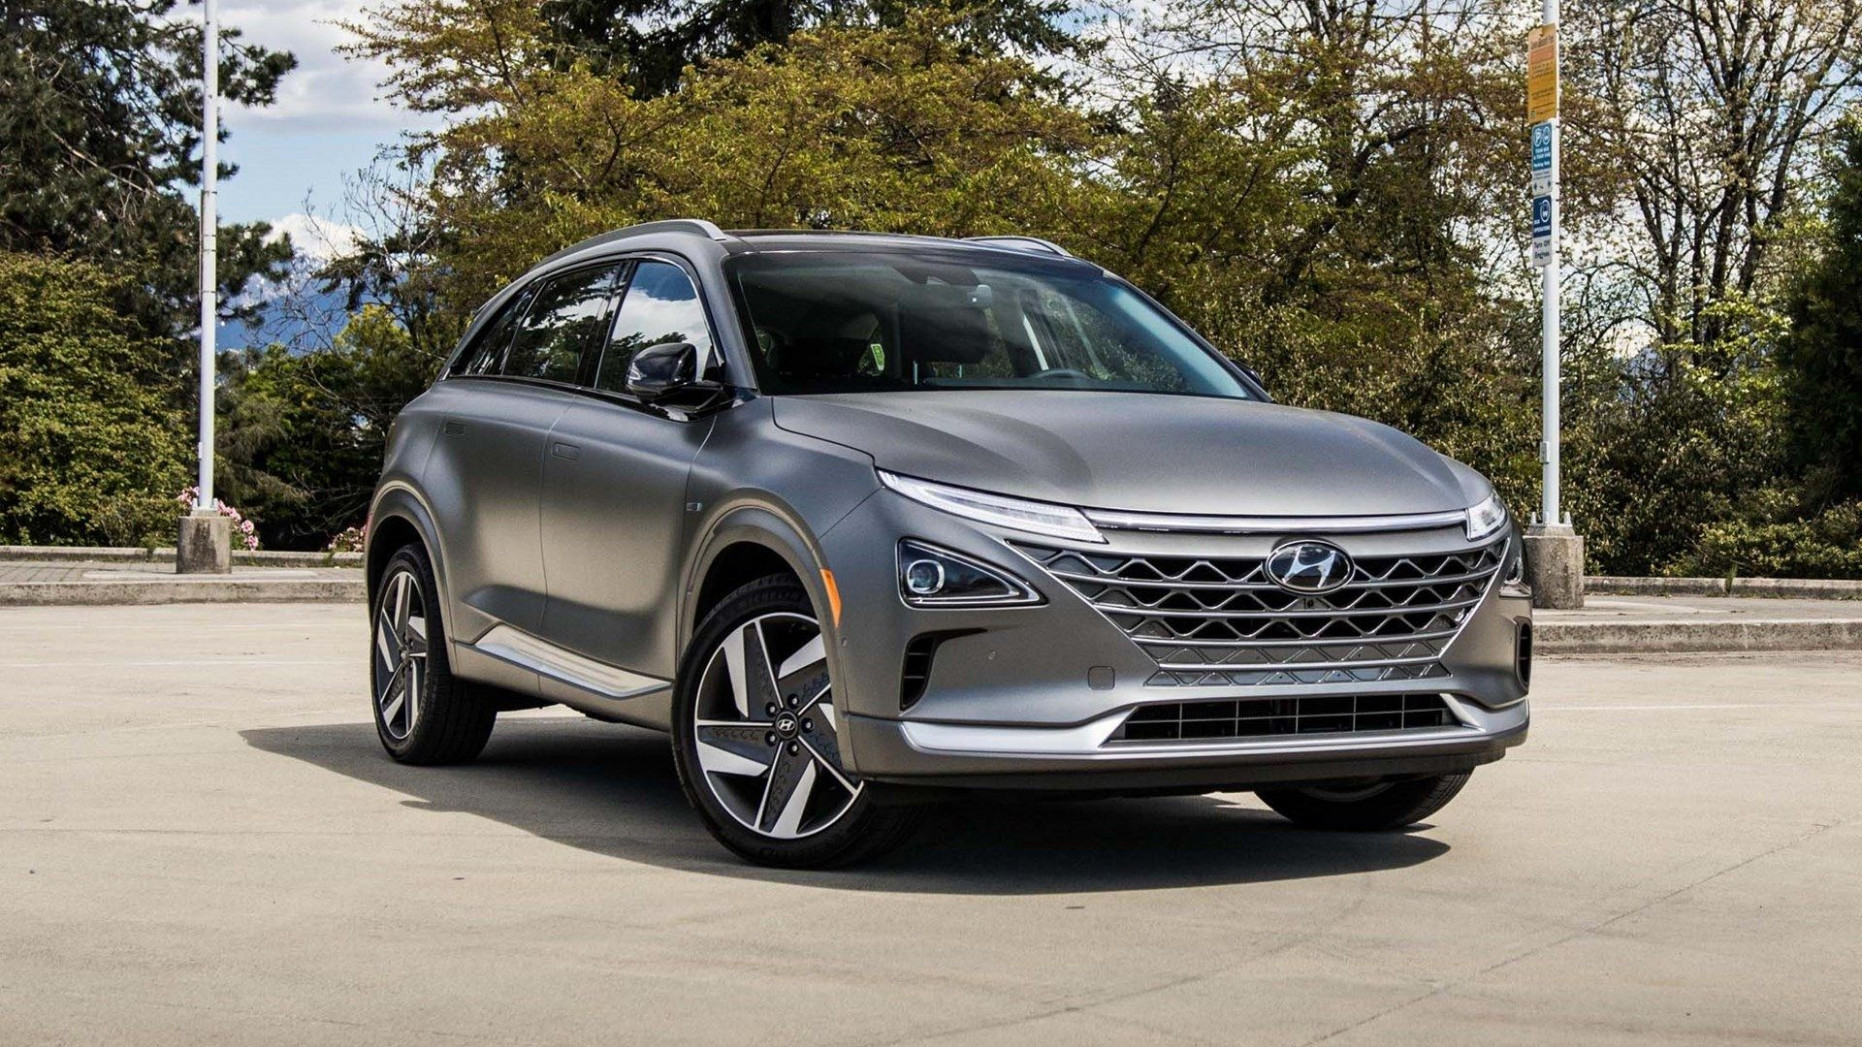 8 Hyundai Nexo For Sale New Interior (With images) | Hyundai ..